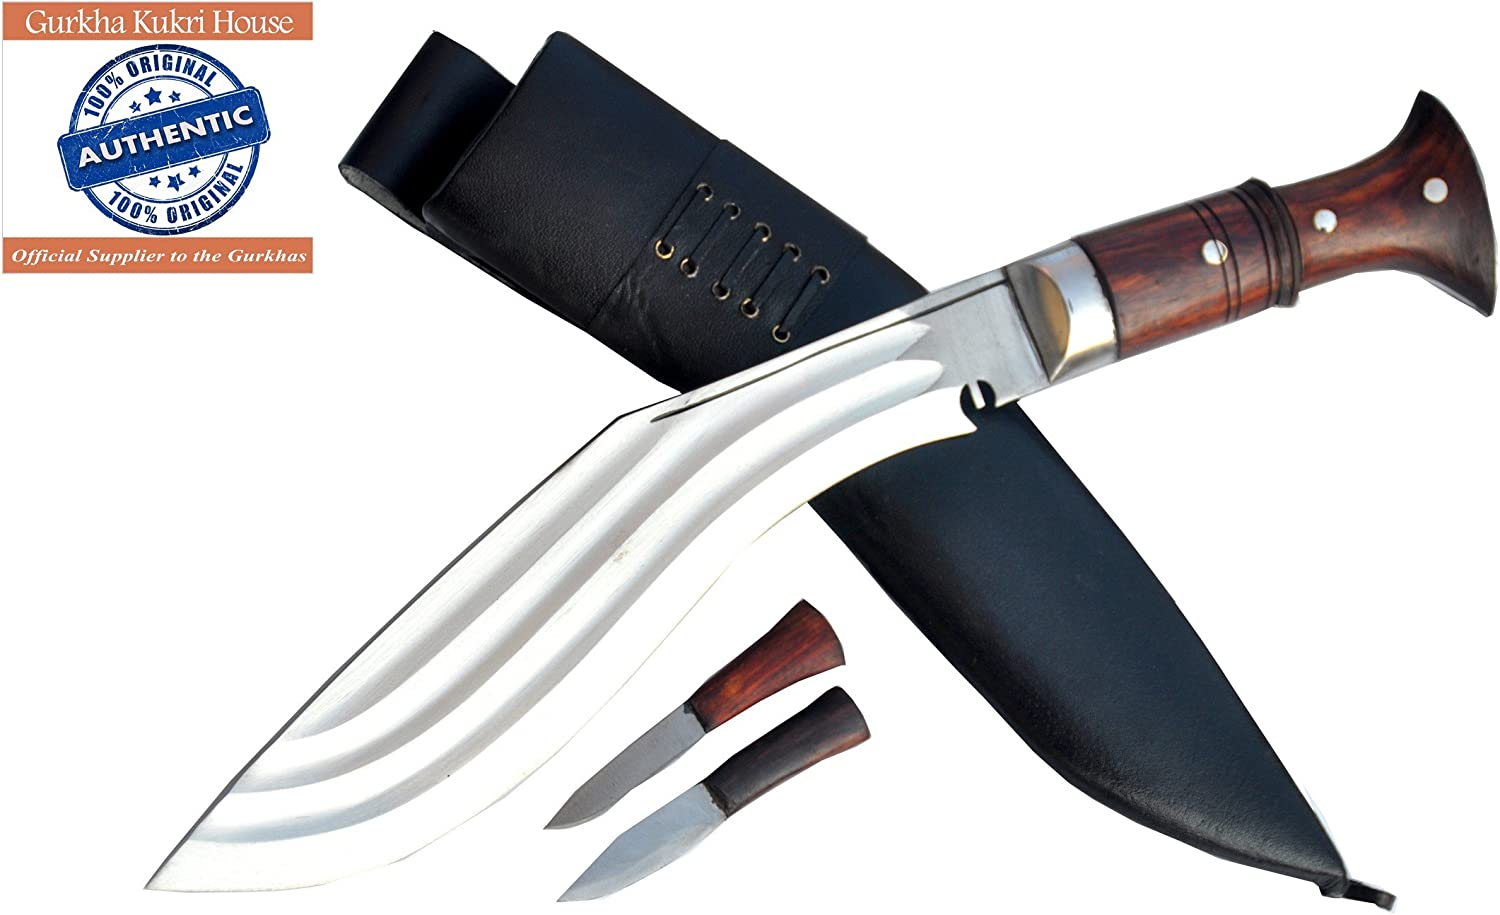 Genuine Gurkha Kukri – authentic 12 3 Chirra 3 fuller the Beast, Full tang wooden handle, black leather Sheath Khukuri- Handmade in Nepal by Gurkha Kukri House – imported by R T Trading Co.